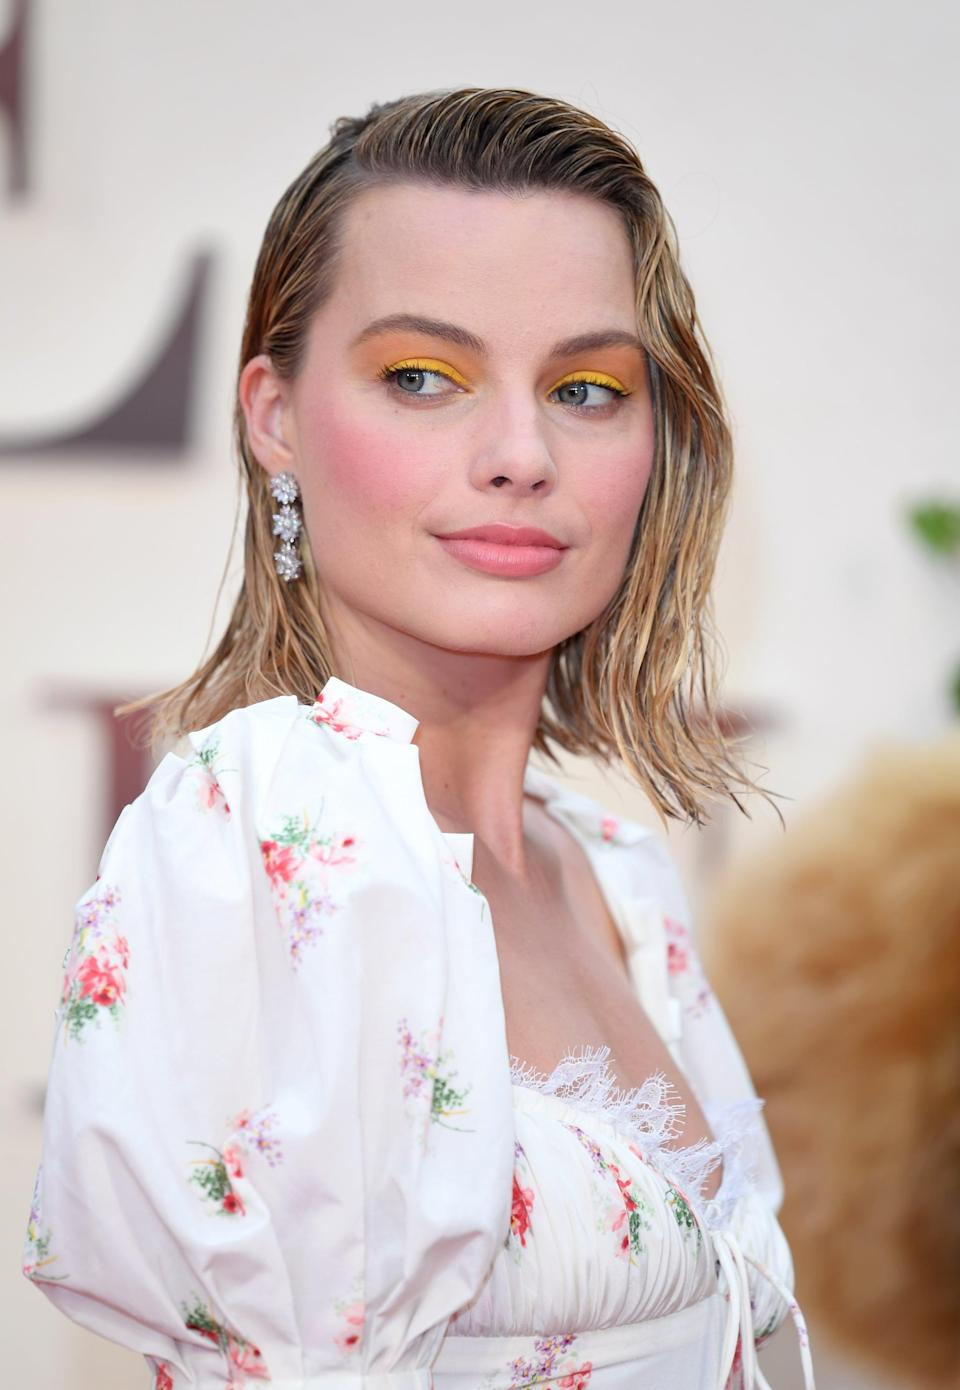 "<p>If 2020 taught us anything about makeup it's that sometimes less is more. ""I'm loving simple, single-colored eyeshadow,"" said New York City-based celebrity makeup artist <a href=""https://www.instagram.com/makeup_cara/?hl=en"" class=""link rapid-noclick-resp"" rel=""nofollow noopener"" target=""_blank"" data-ylk=""slk:Cara Lovello"">Cara Lovello</a>. She recommended pairing it with light makeup, fluffy brows, and a tinted balm on the lips. </p> <p>Shop the Trend: <span>Smashbox Always On Cream Eyeshadow</span> ($22), <span>Trinny London Eyetallics Eyeshadow</span> ($29)</p>"